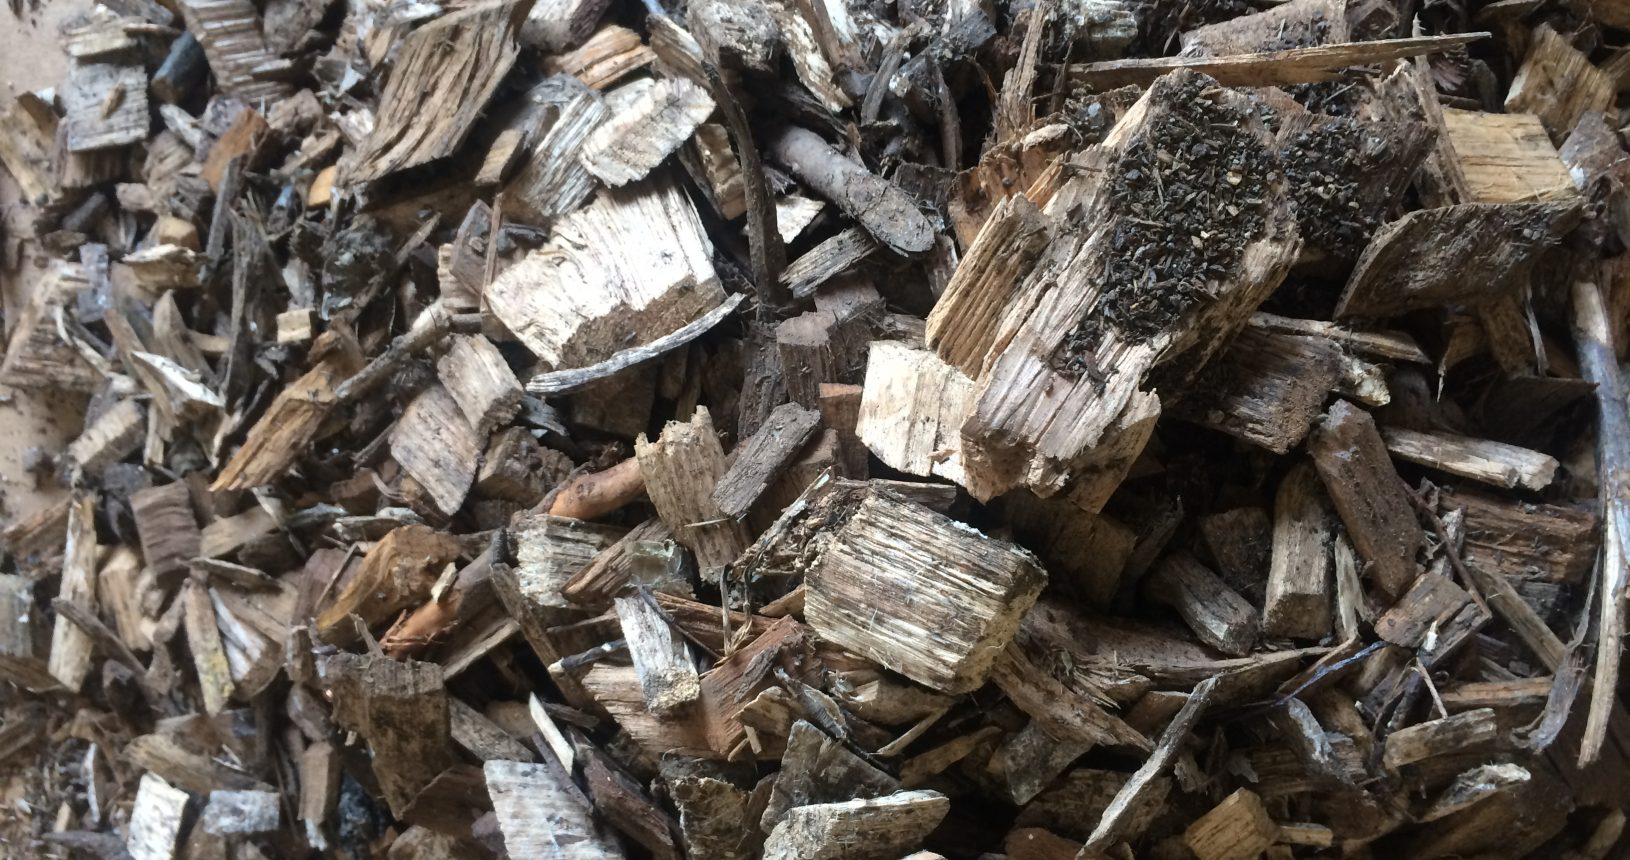 The environmentally friendly biodegradable core of the Silt Saver Chip Wattle is made up of kiln dried wood chips such as those pictured here.